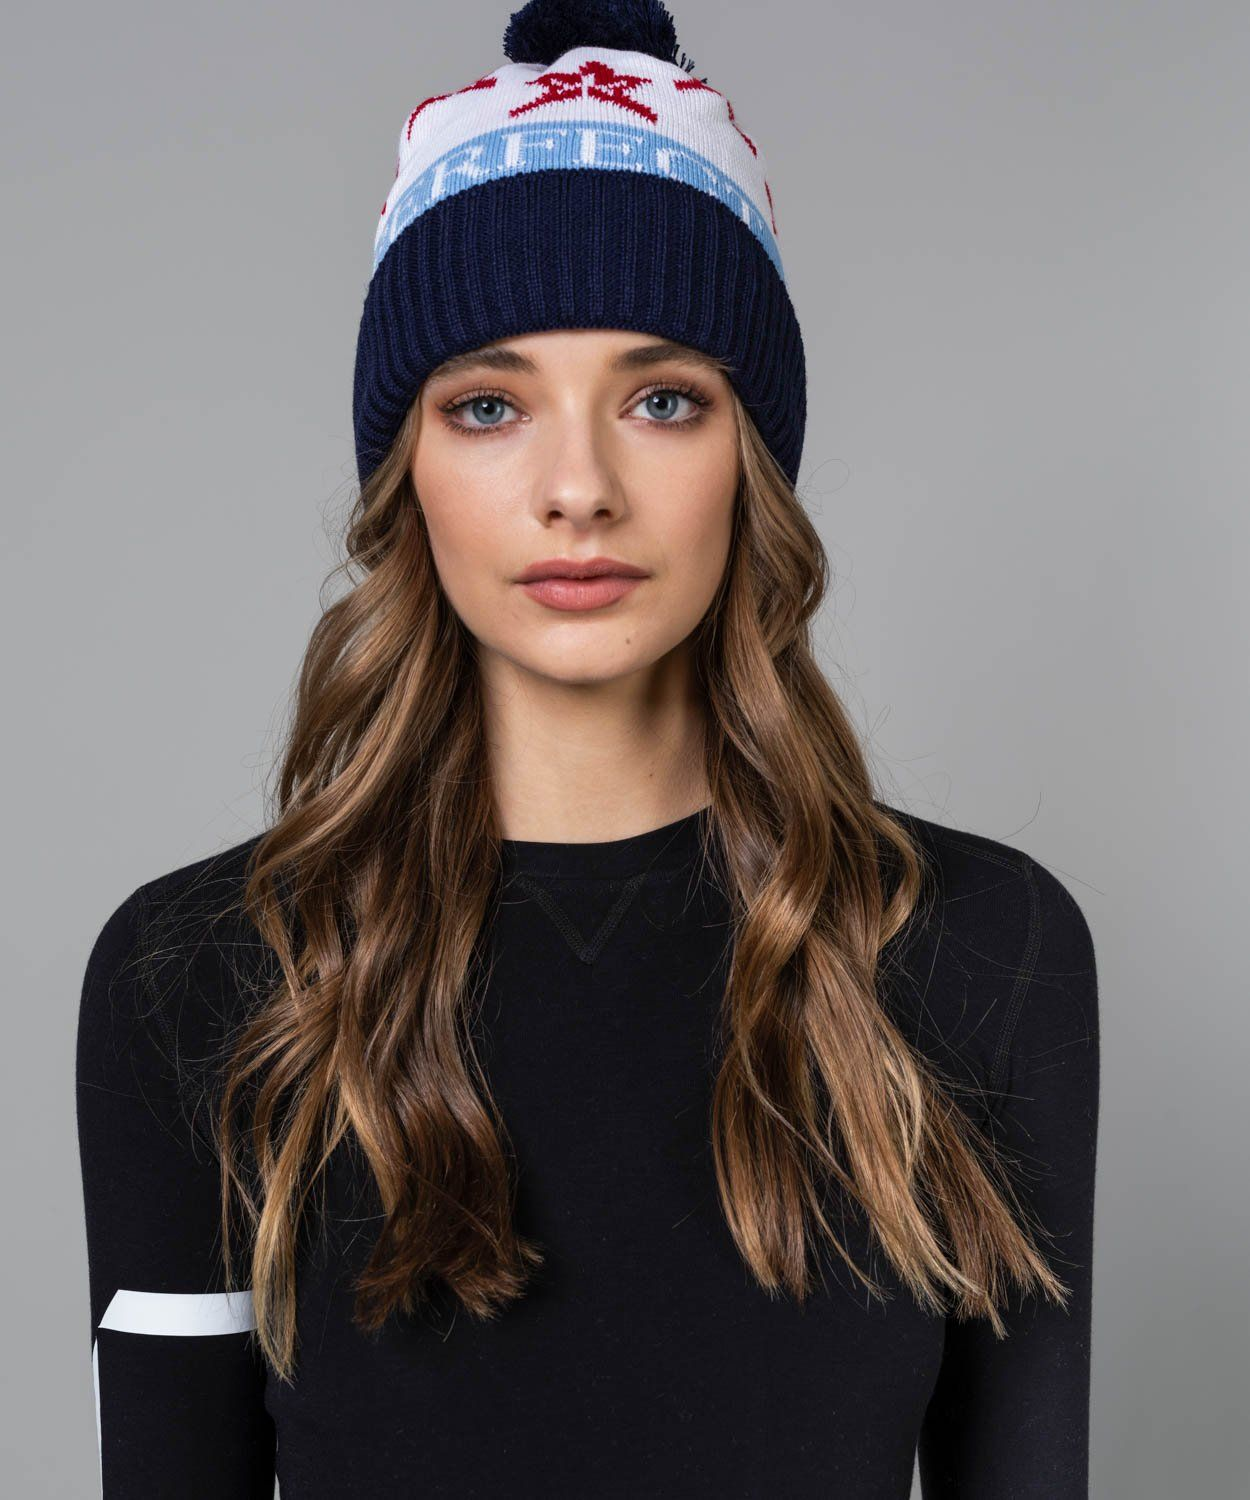 PM Star Beanie Hats | Beanies Perfect Moment Snow White/Navy OS